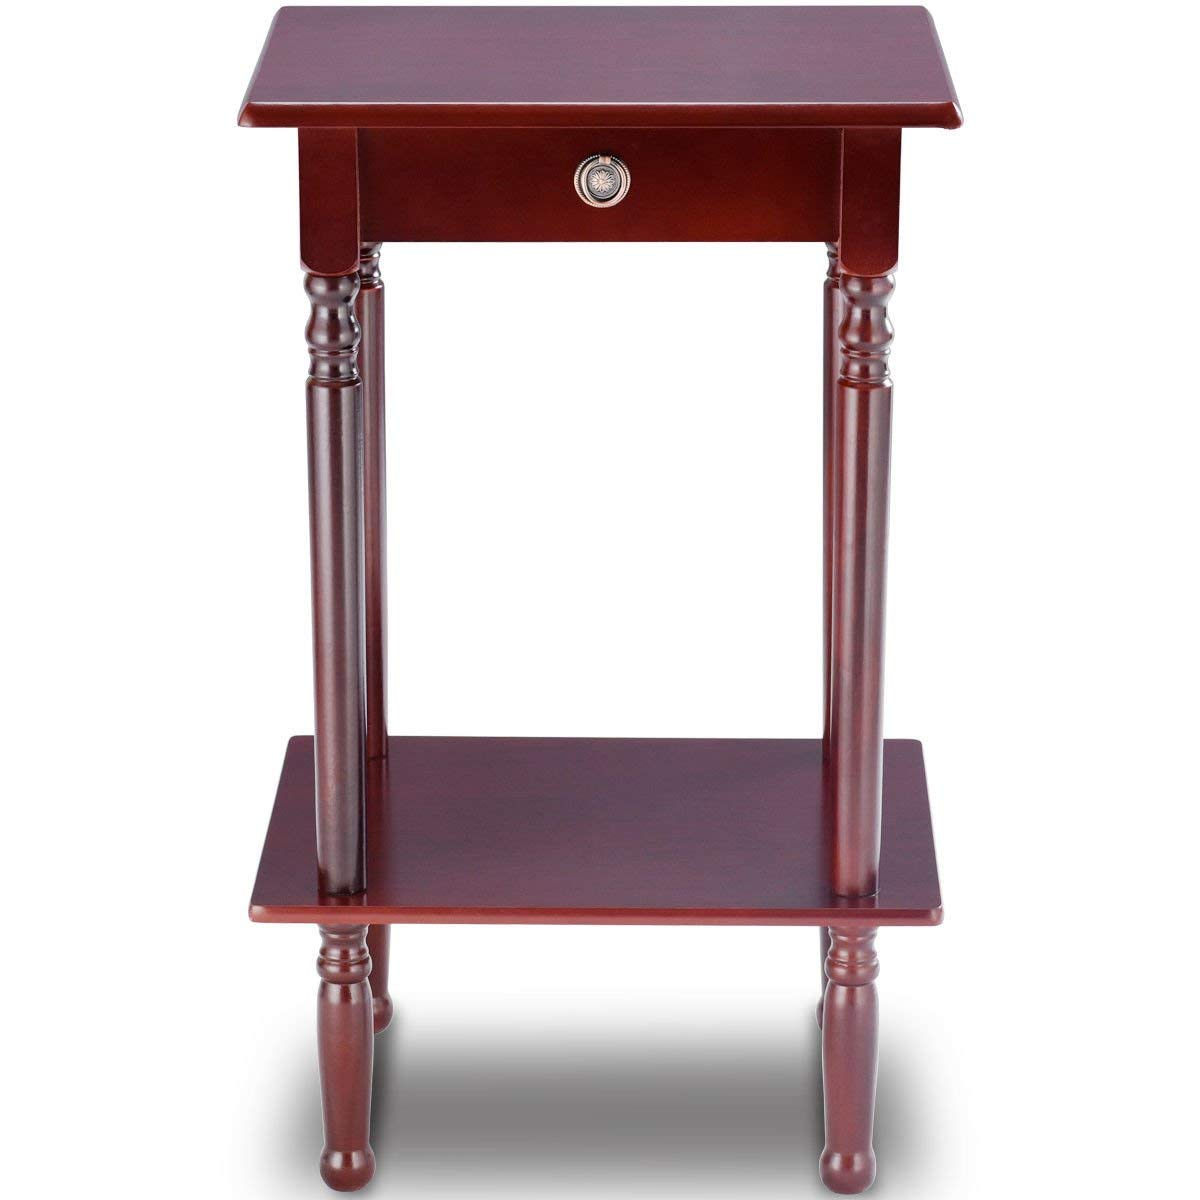 tall accent table find line wood get quotations diamondgift style telephone stand shelf end side threshold margate tables edmonton outdoor top covers sheesham coffee accessories